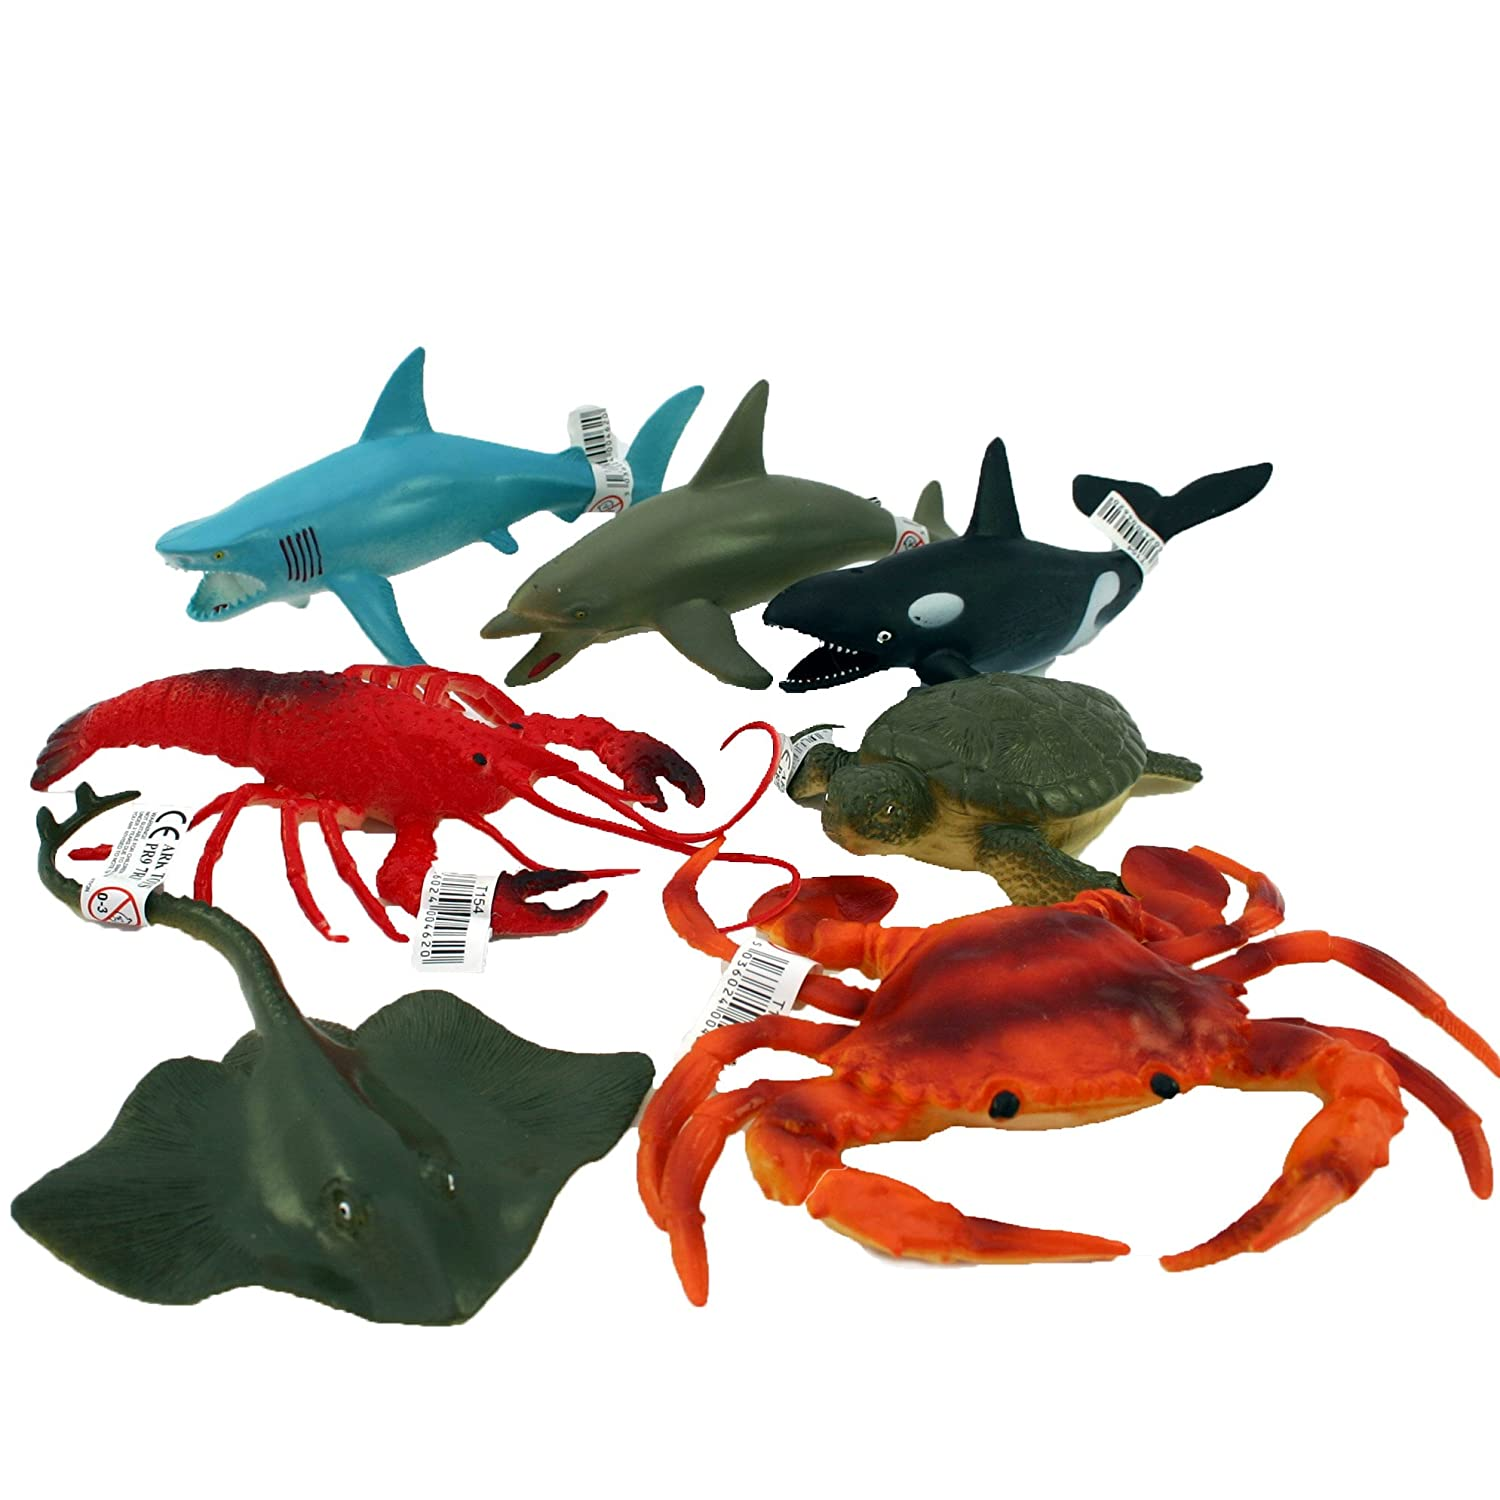 Sea Creature Toys : Safari animal toys images